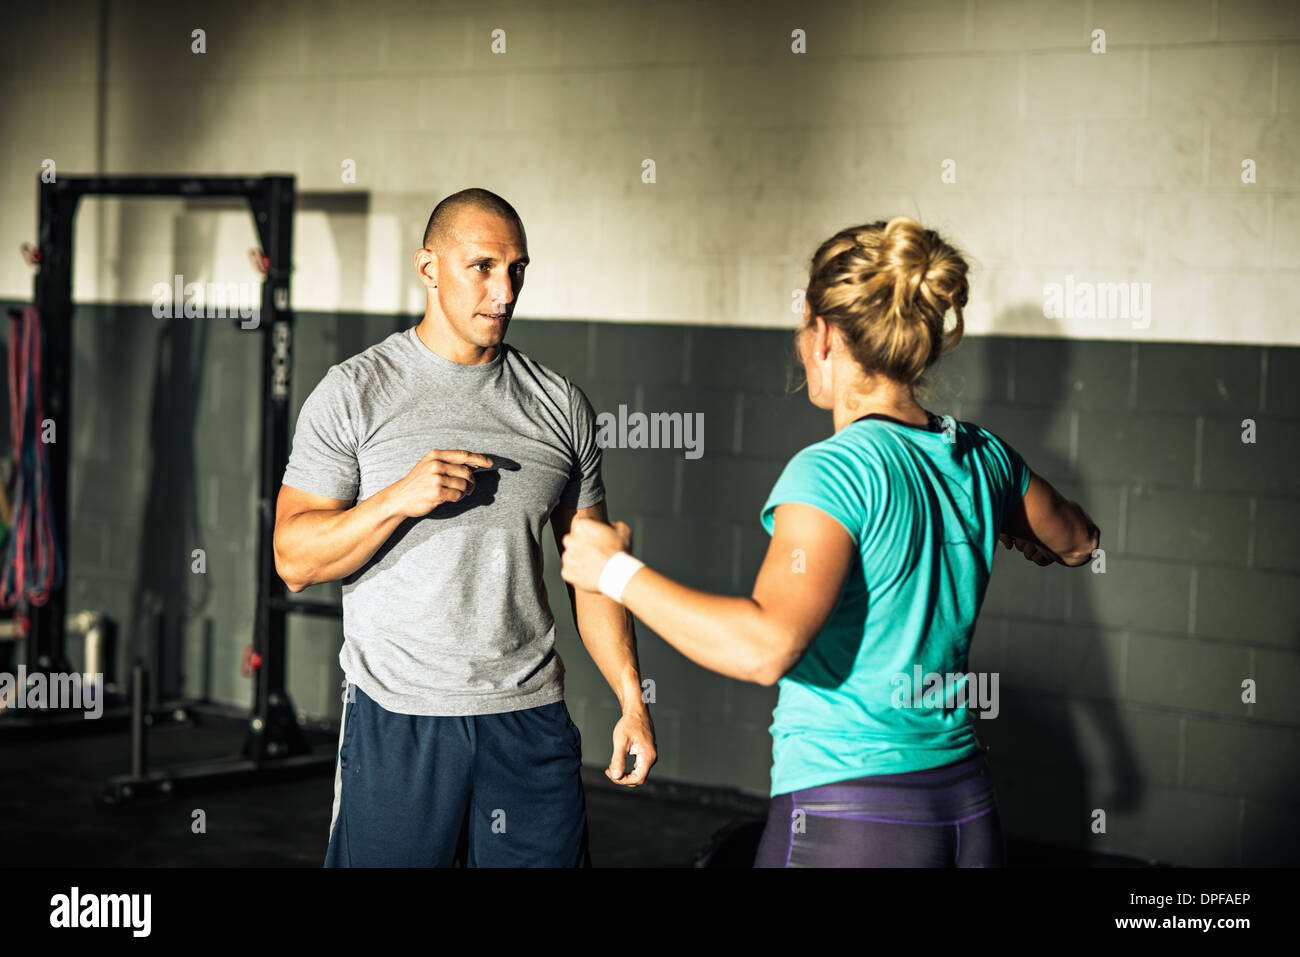 Trainer mentoring young woman in gymnasium - Stock Image